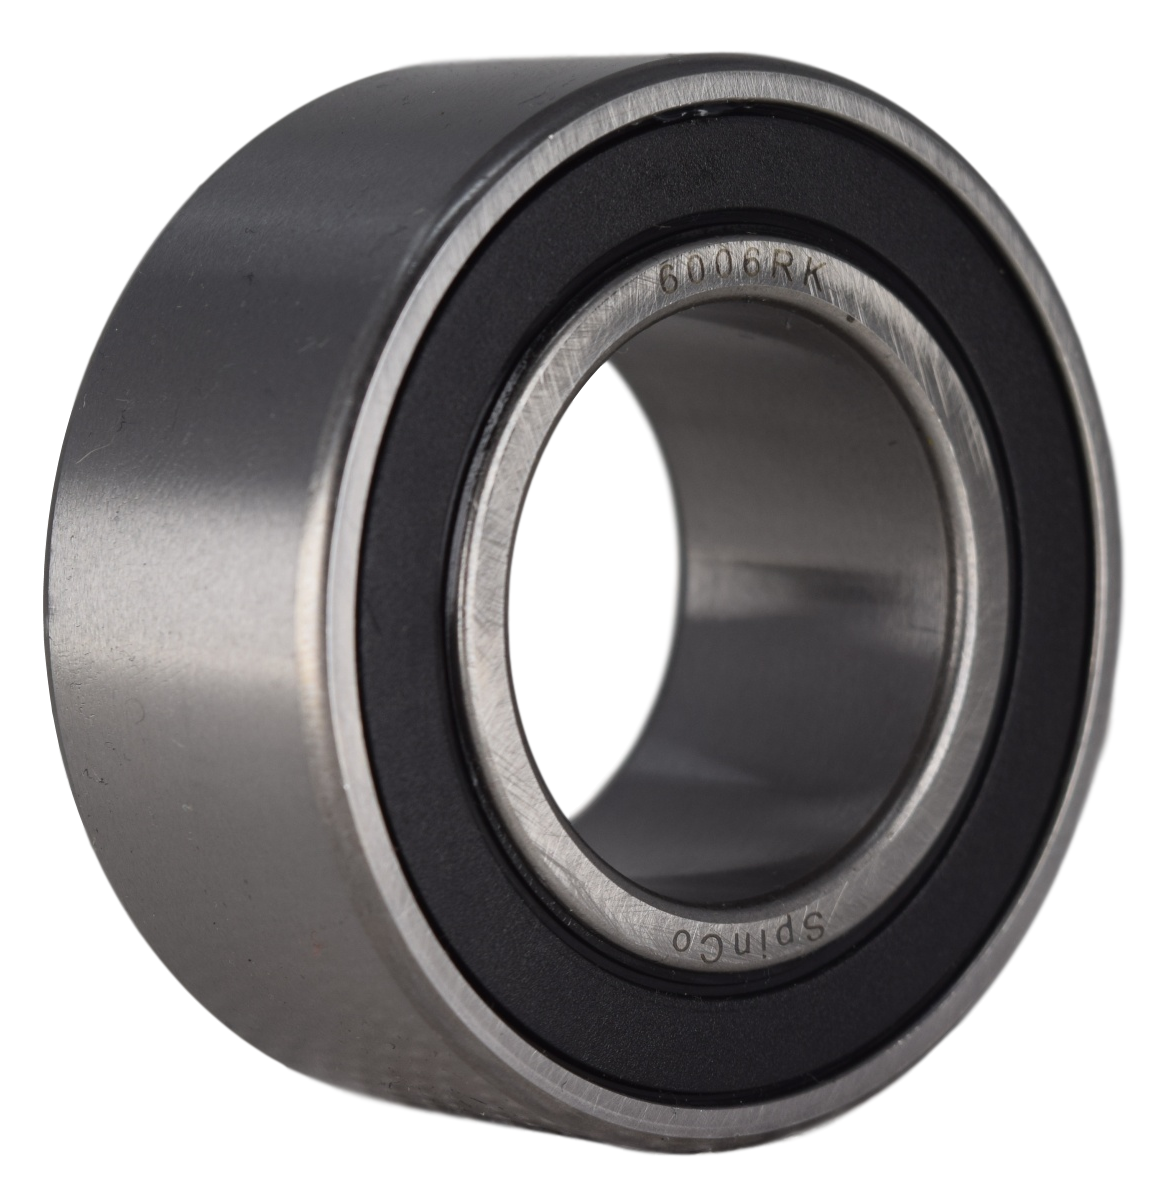 6006RK Row Cleaner Bearing AA38601, 2570-594, 108134A1 Image